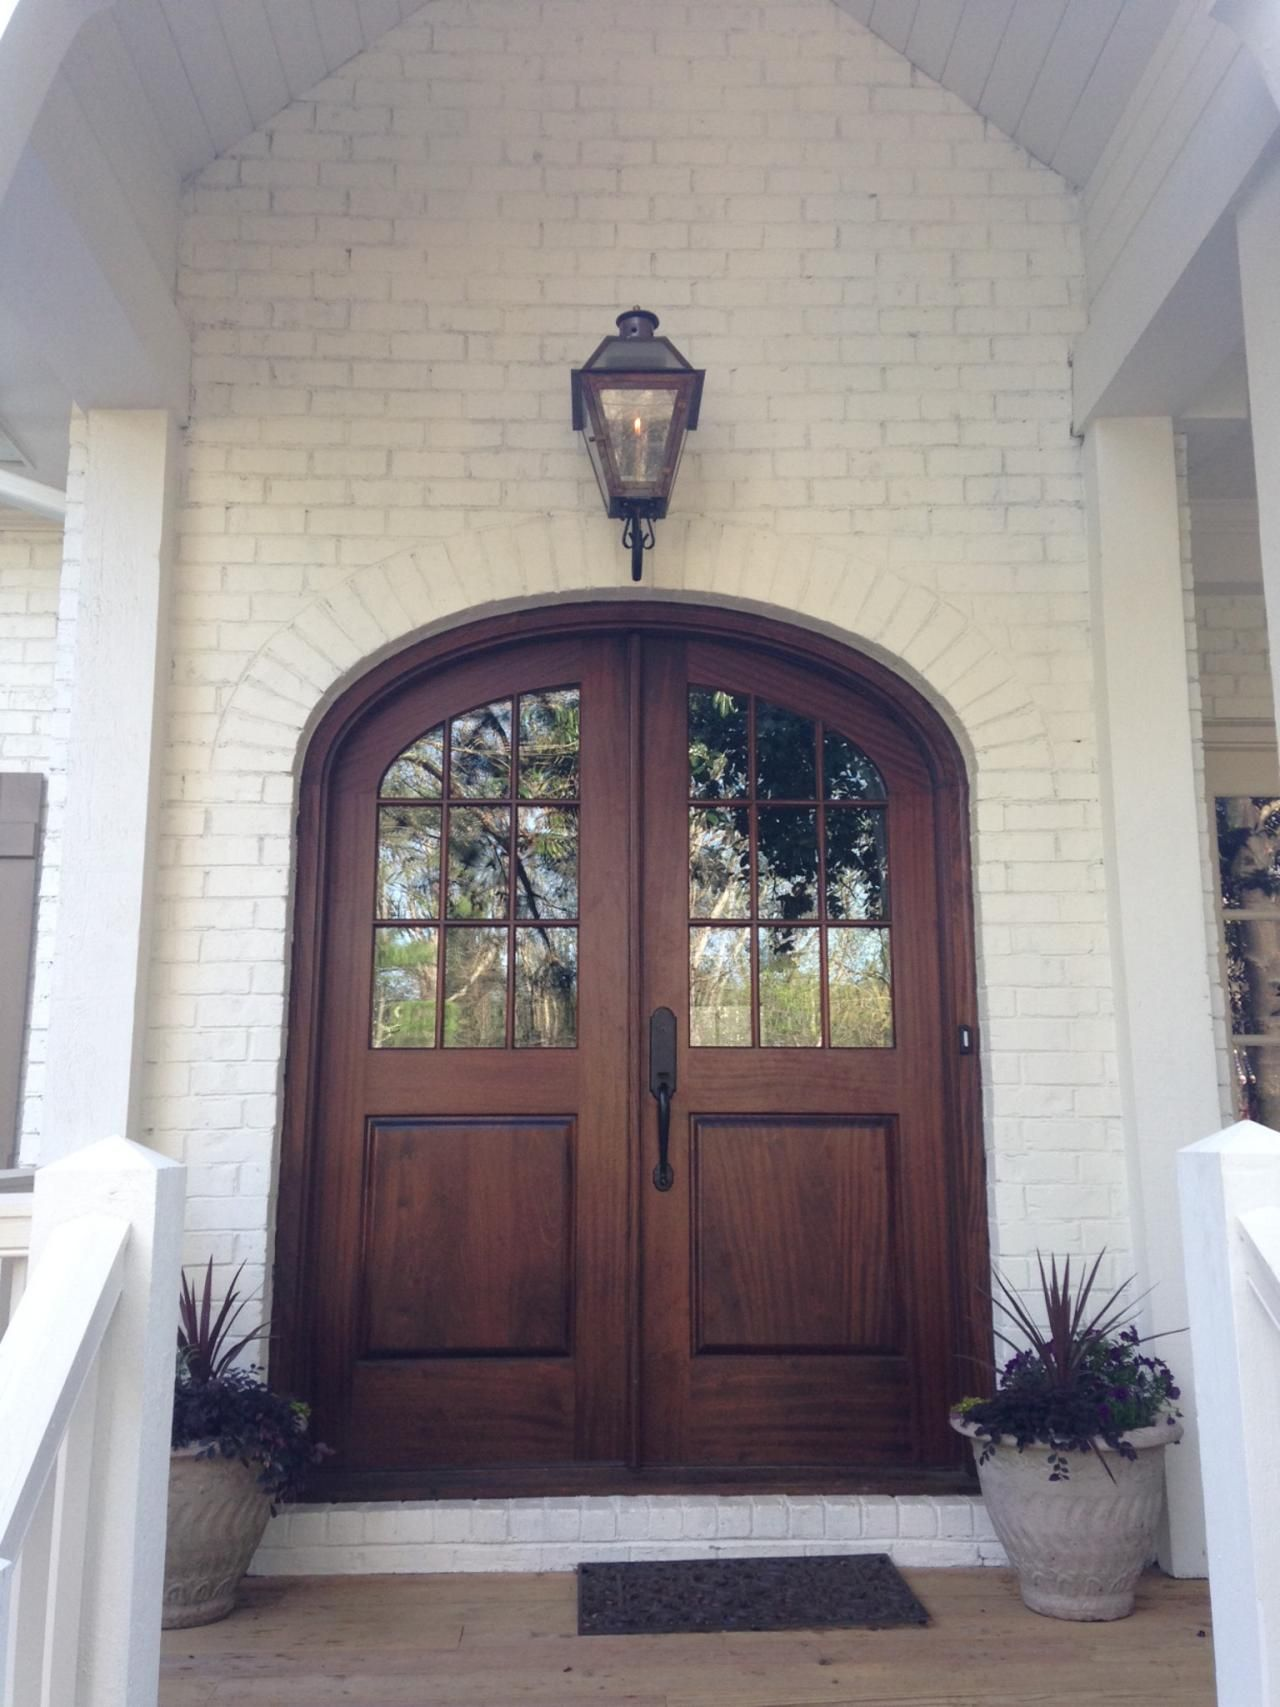 Brown Arched Glass Front Door On White Brick Home Build It In 2018